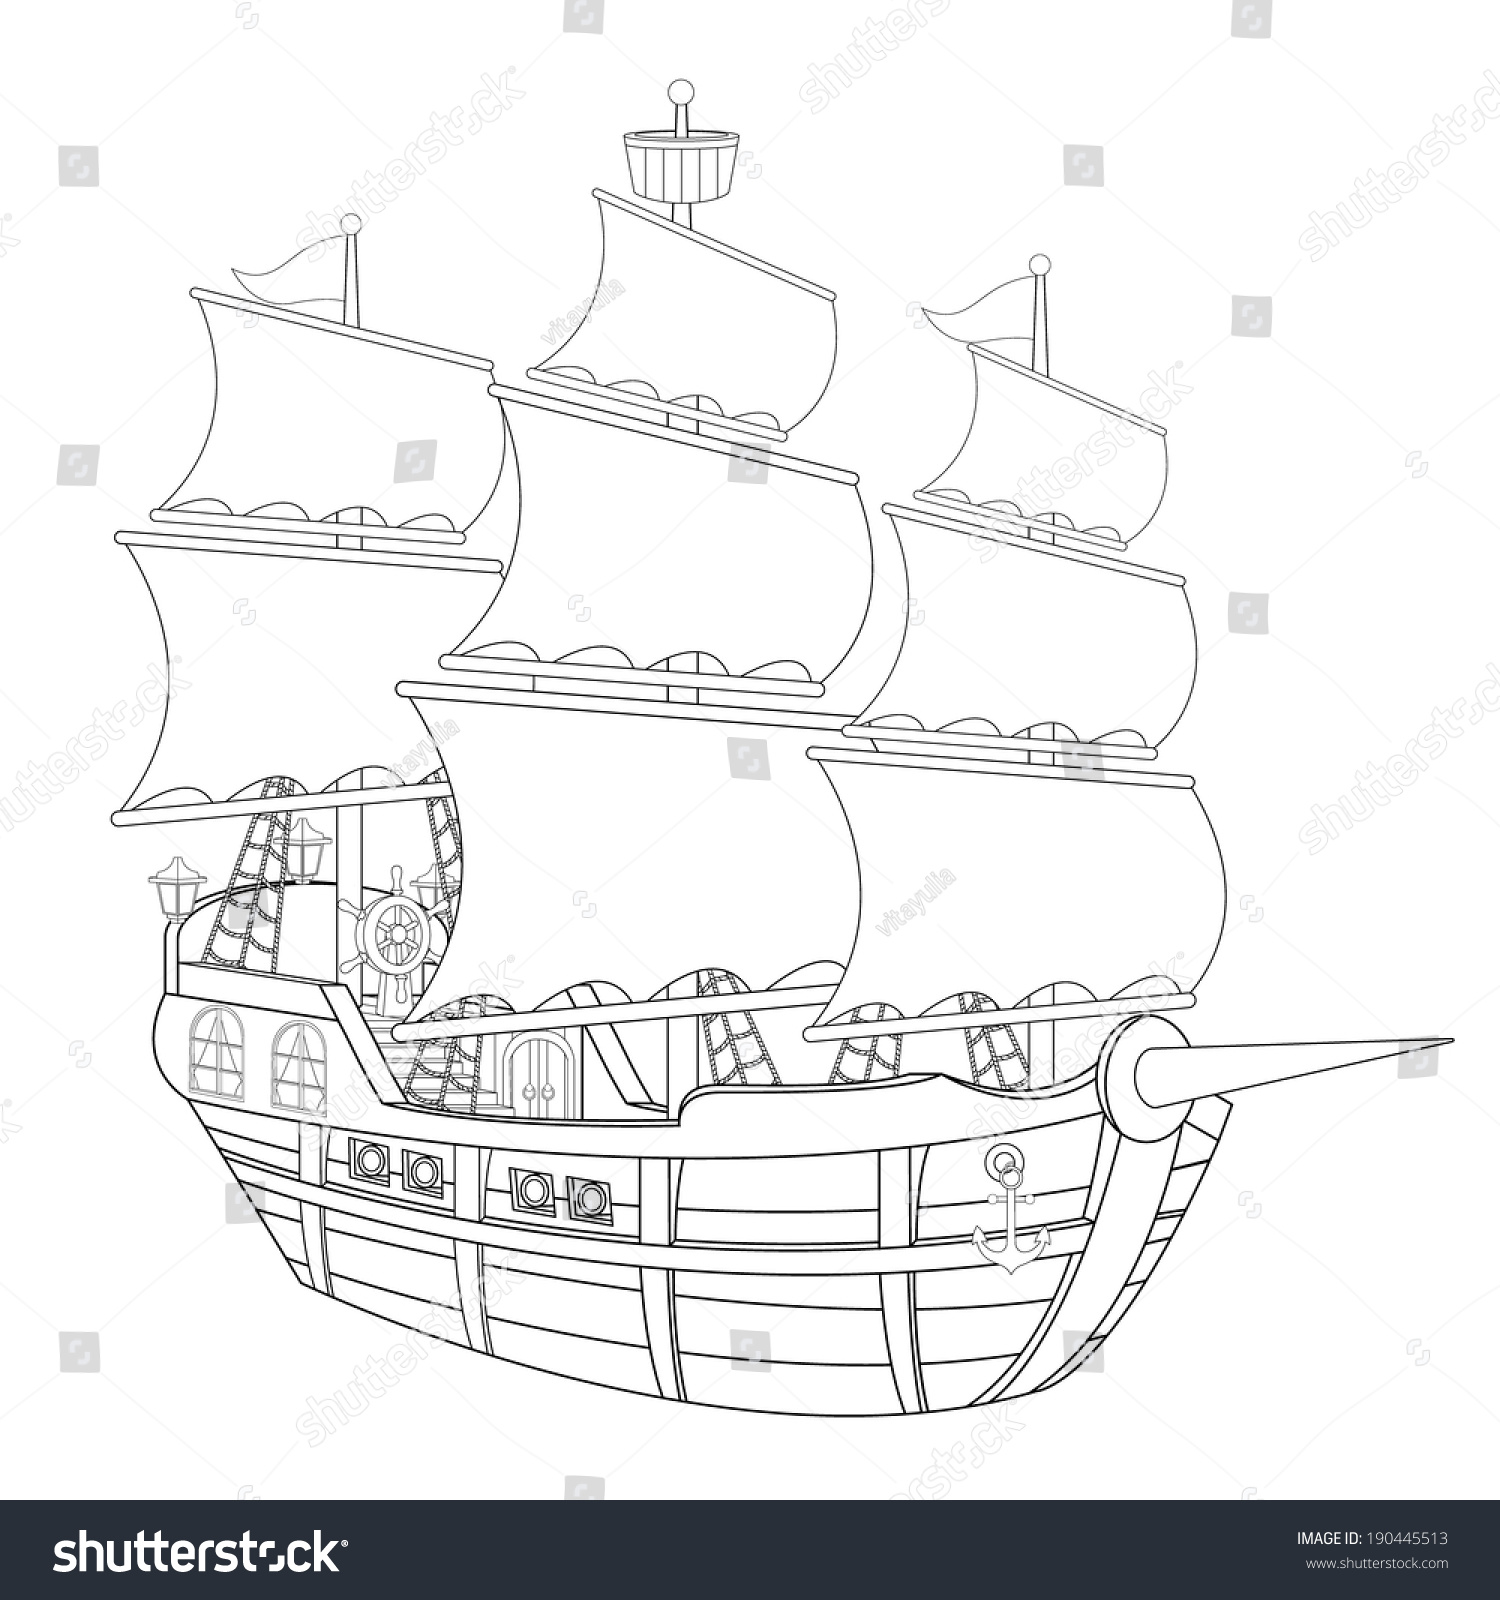 Coloring page pirate ship illustration children stock vector the coloring page pirate ship illustration for the children pooptronica Choice Image